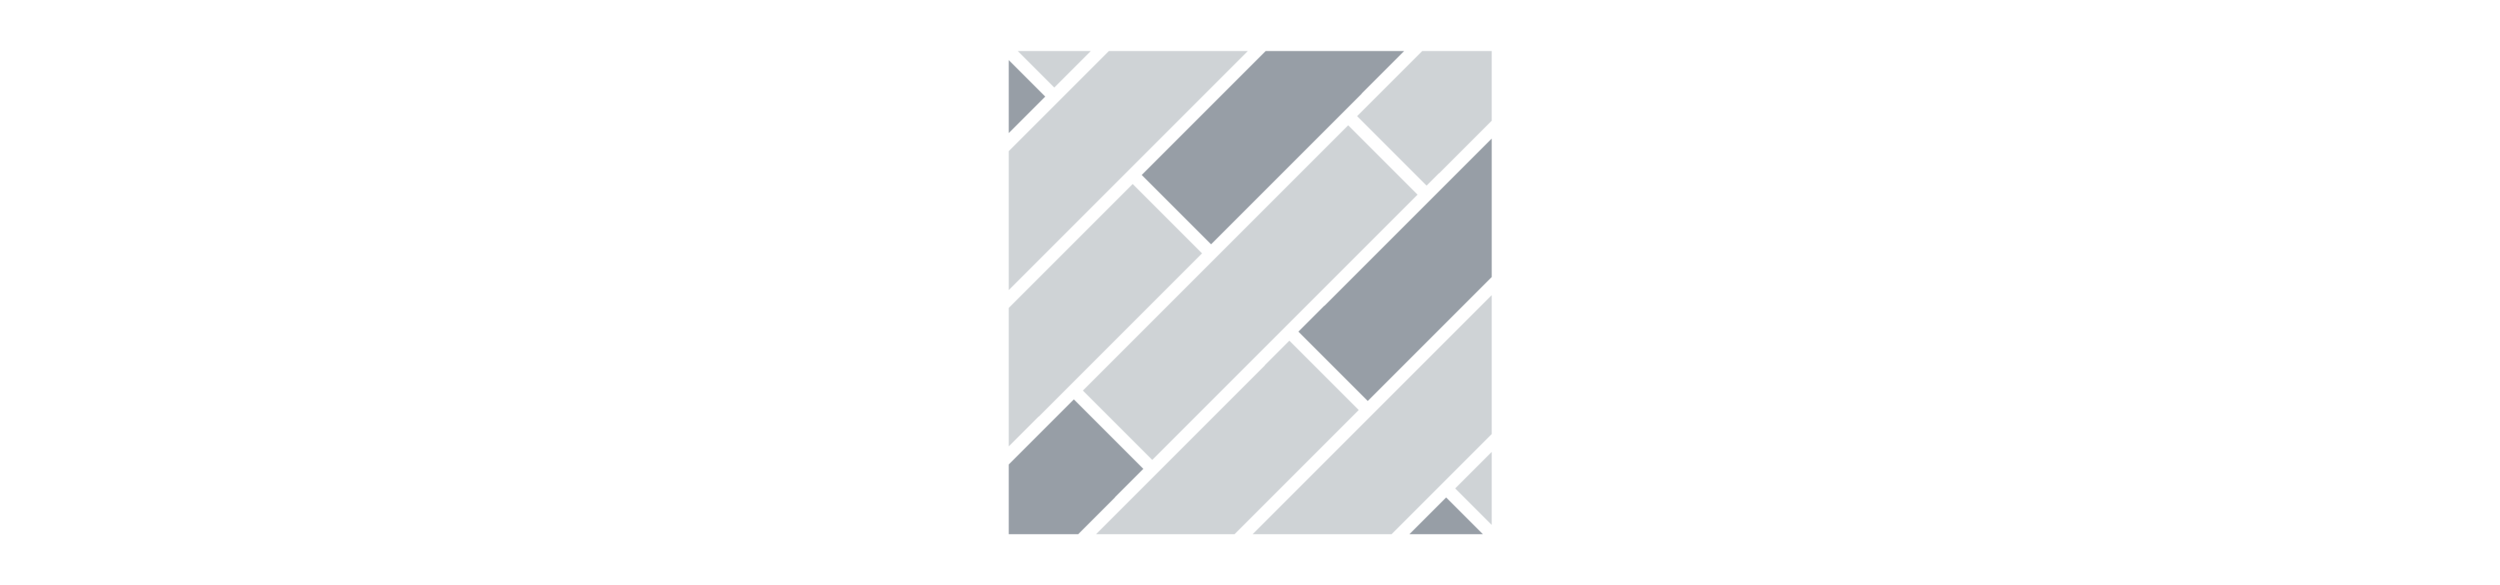 icon-product-selection-white-lines.png